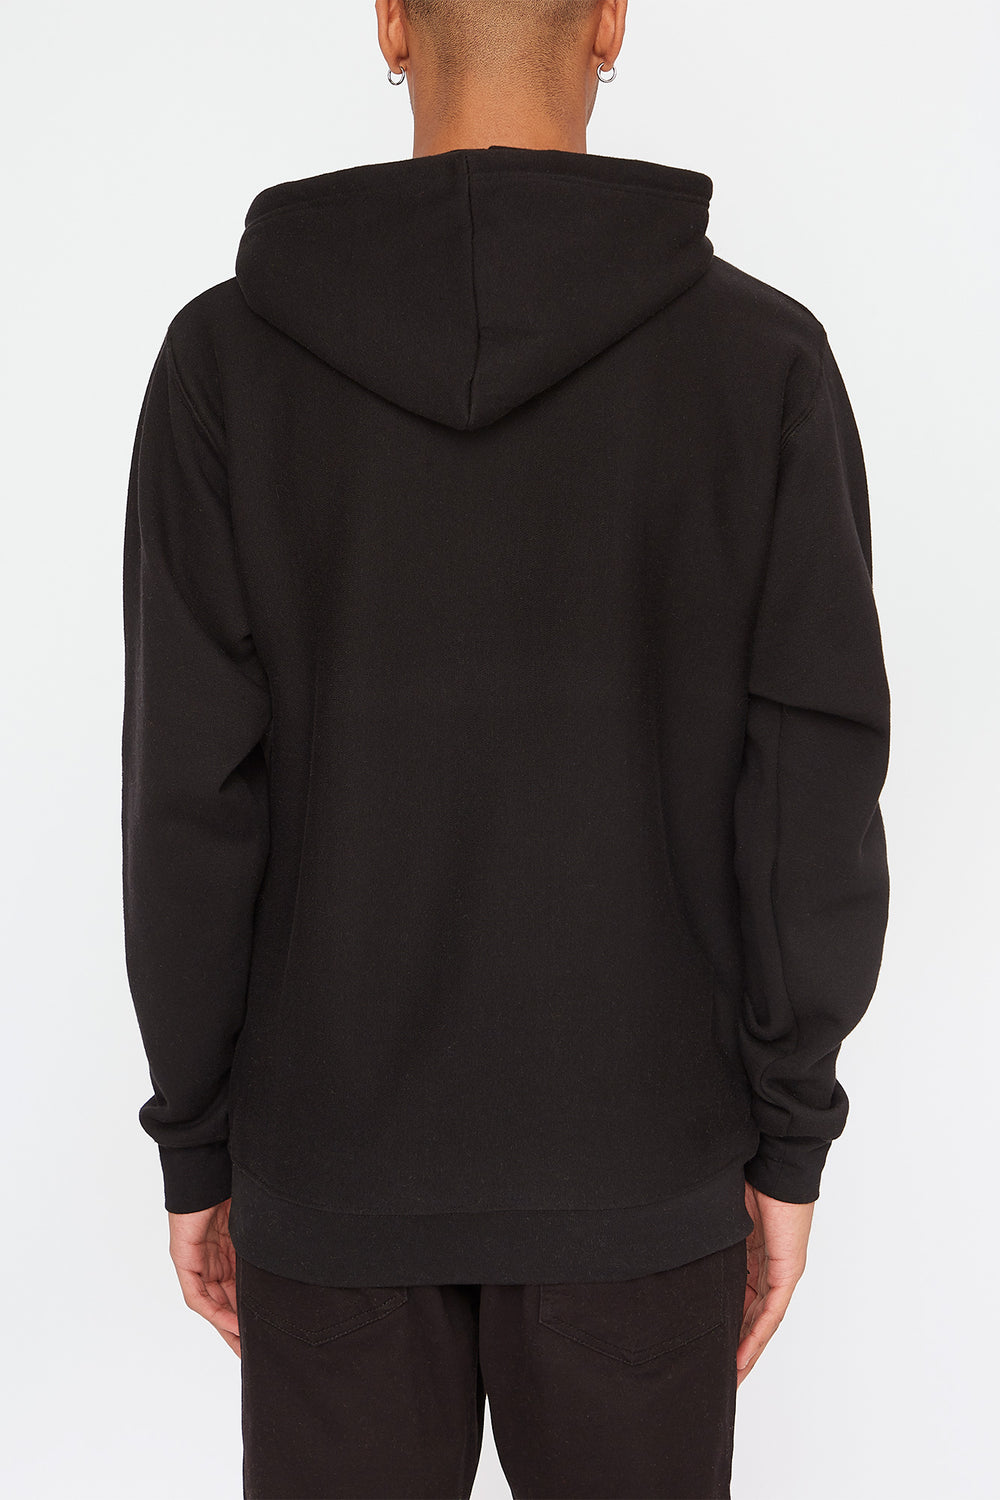 Mens Frosted Flakes Hoodie Black